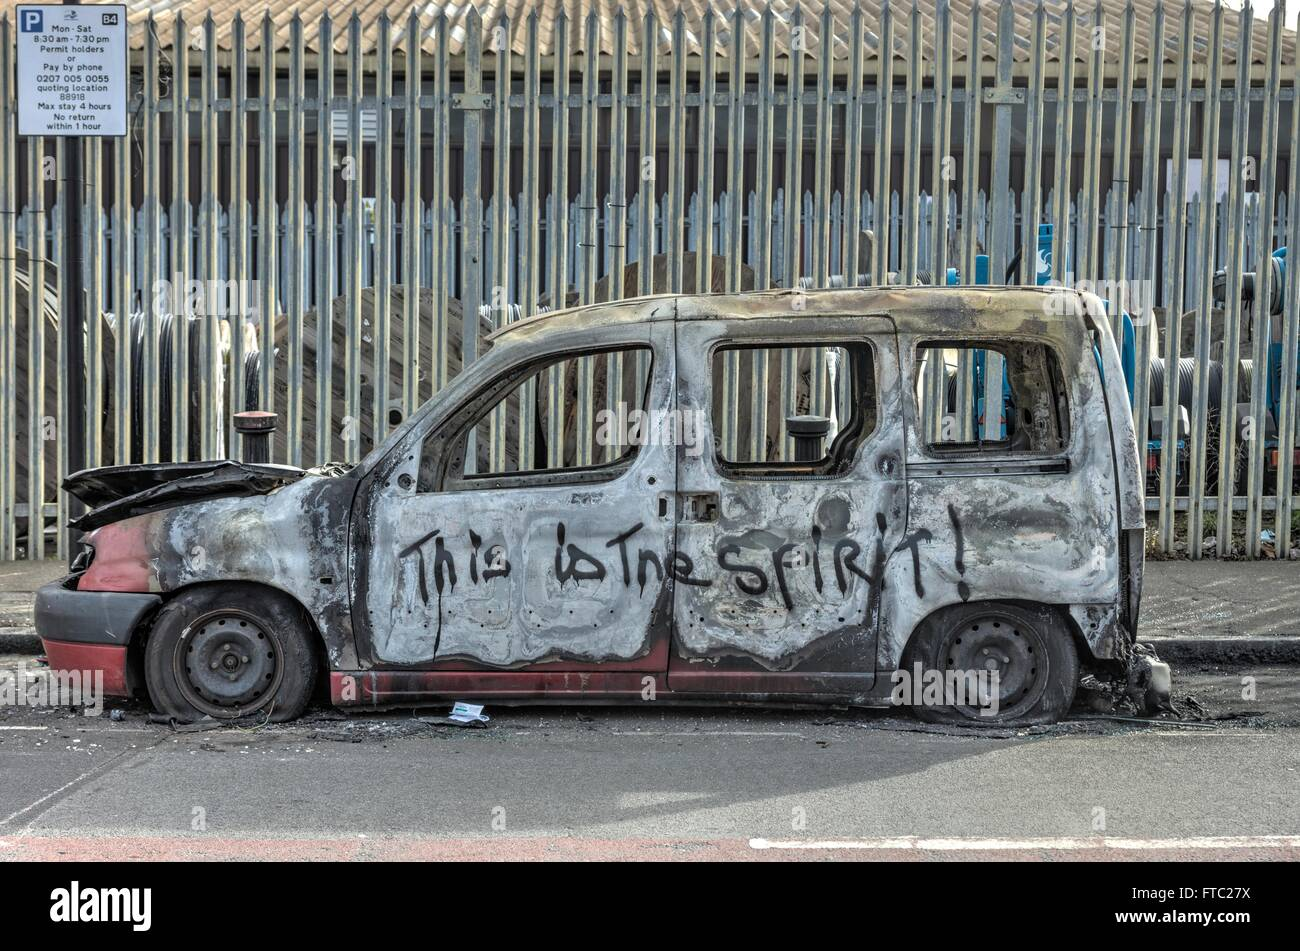 abandoned car, Hackney Wick - Stock Image